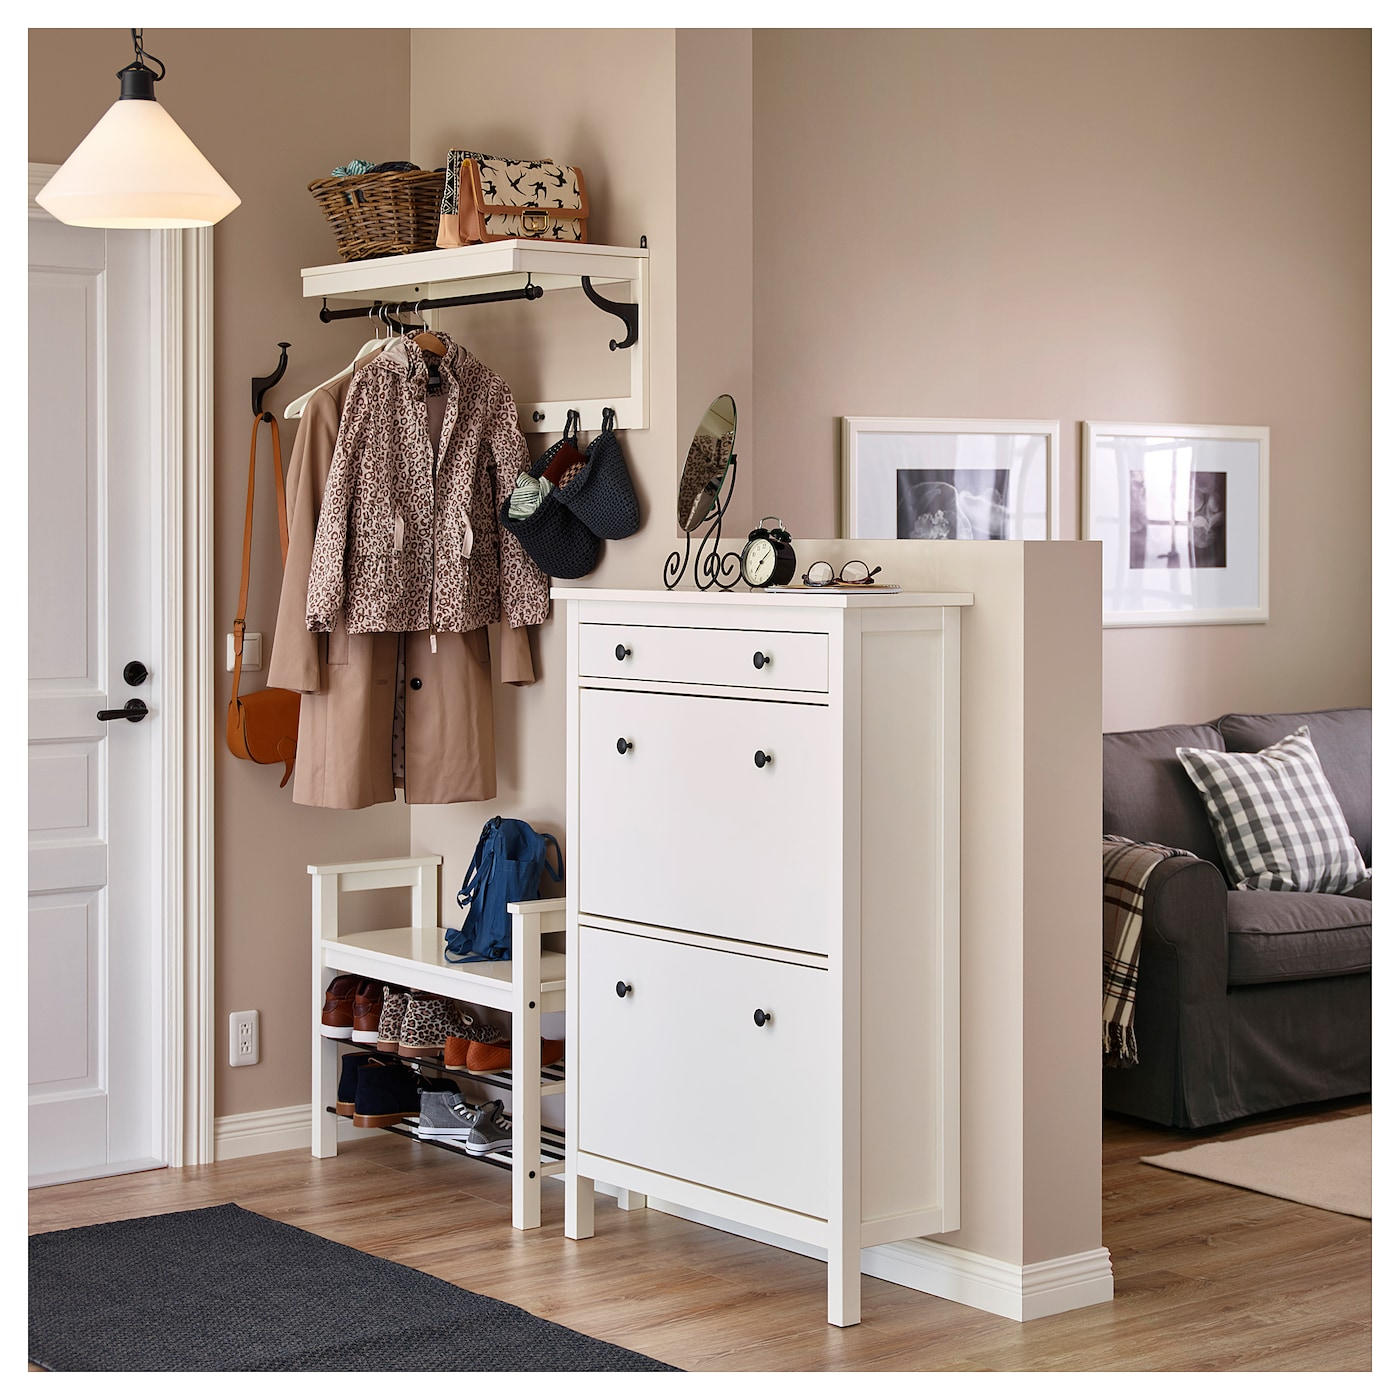 st compartments en cabinet with small products storage organisers white ikea ll ireland ie cabinets shoe